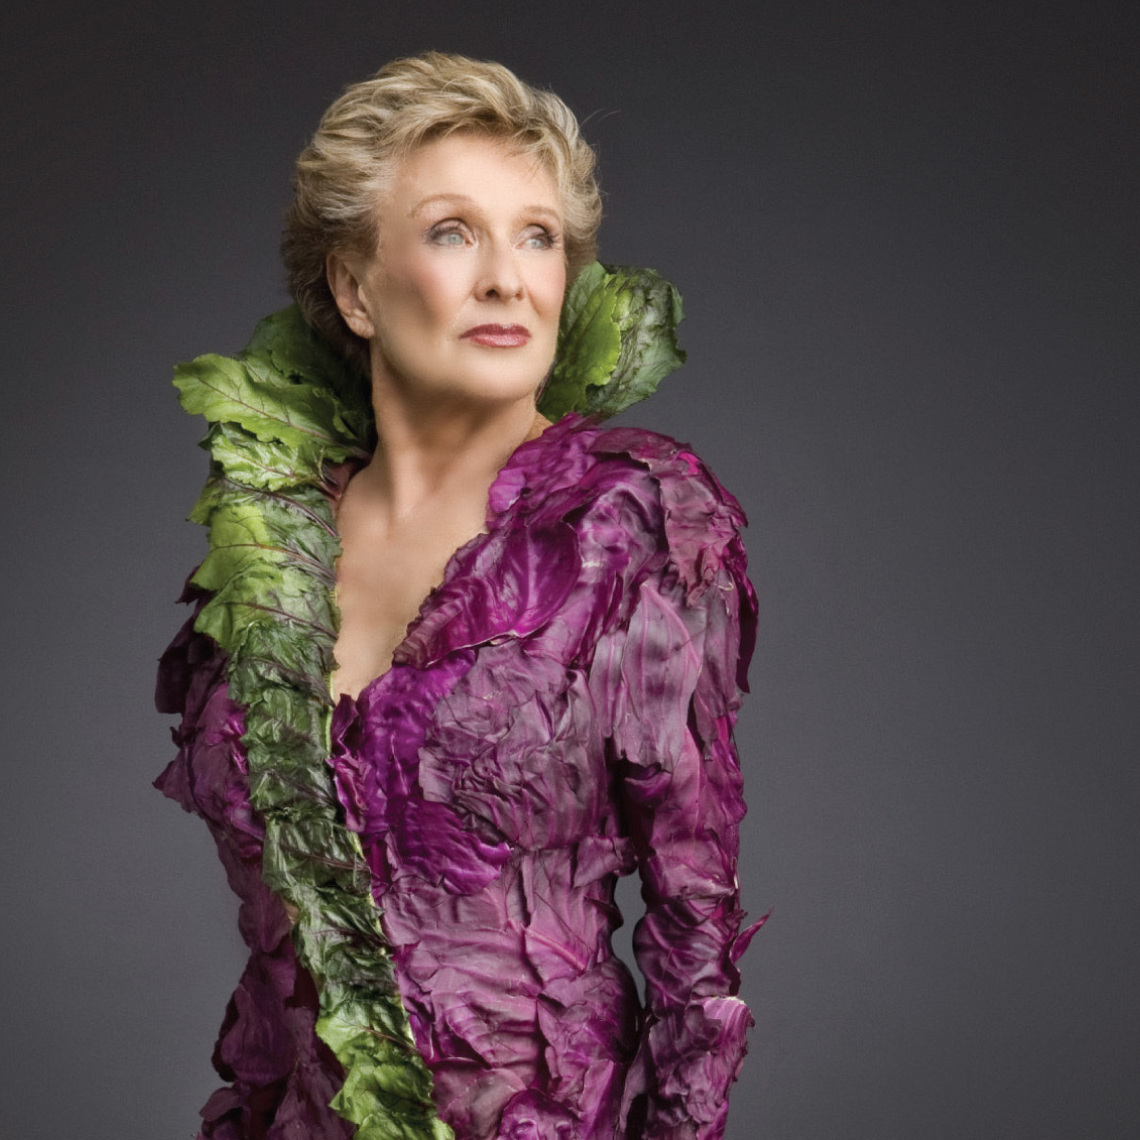 Cloris Leachman models veggie chic in a campaign for PETA.